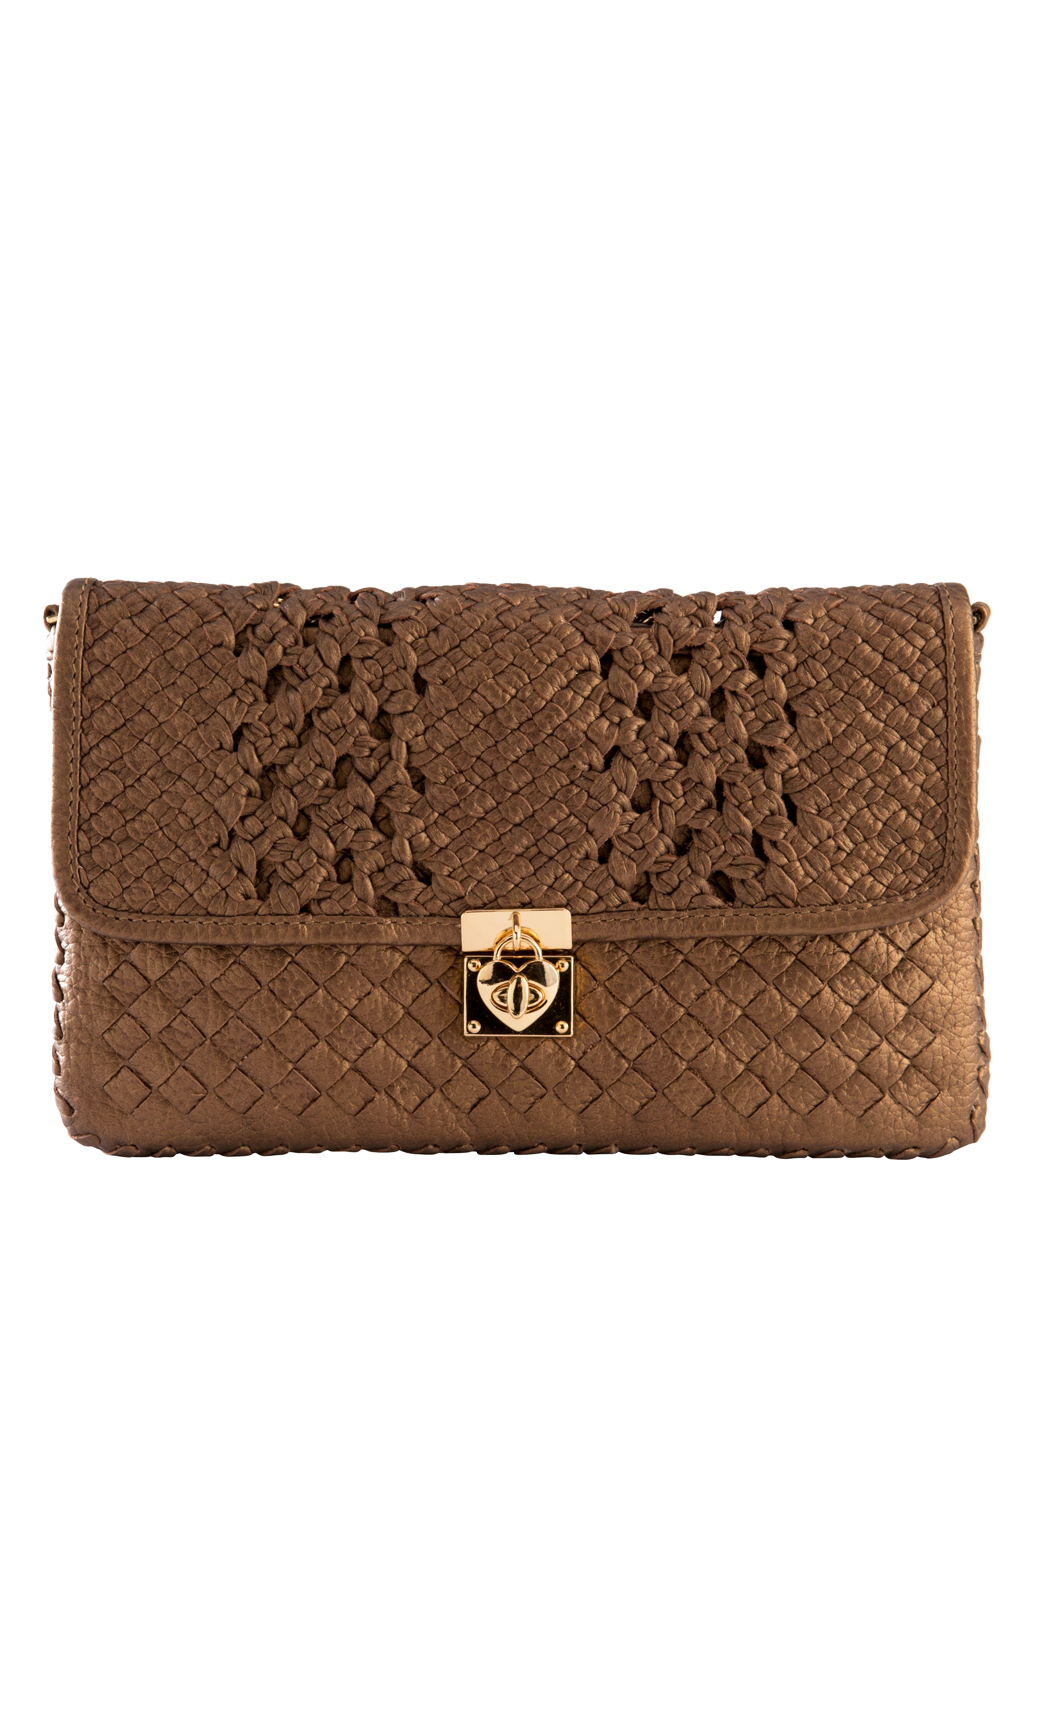 Classic Weave Two Weave Clutch with Heart Lock in Bronze. Buy Online